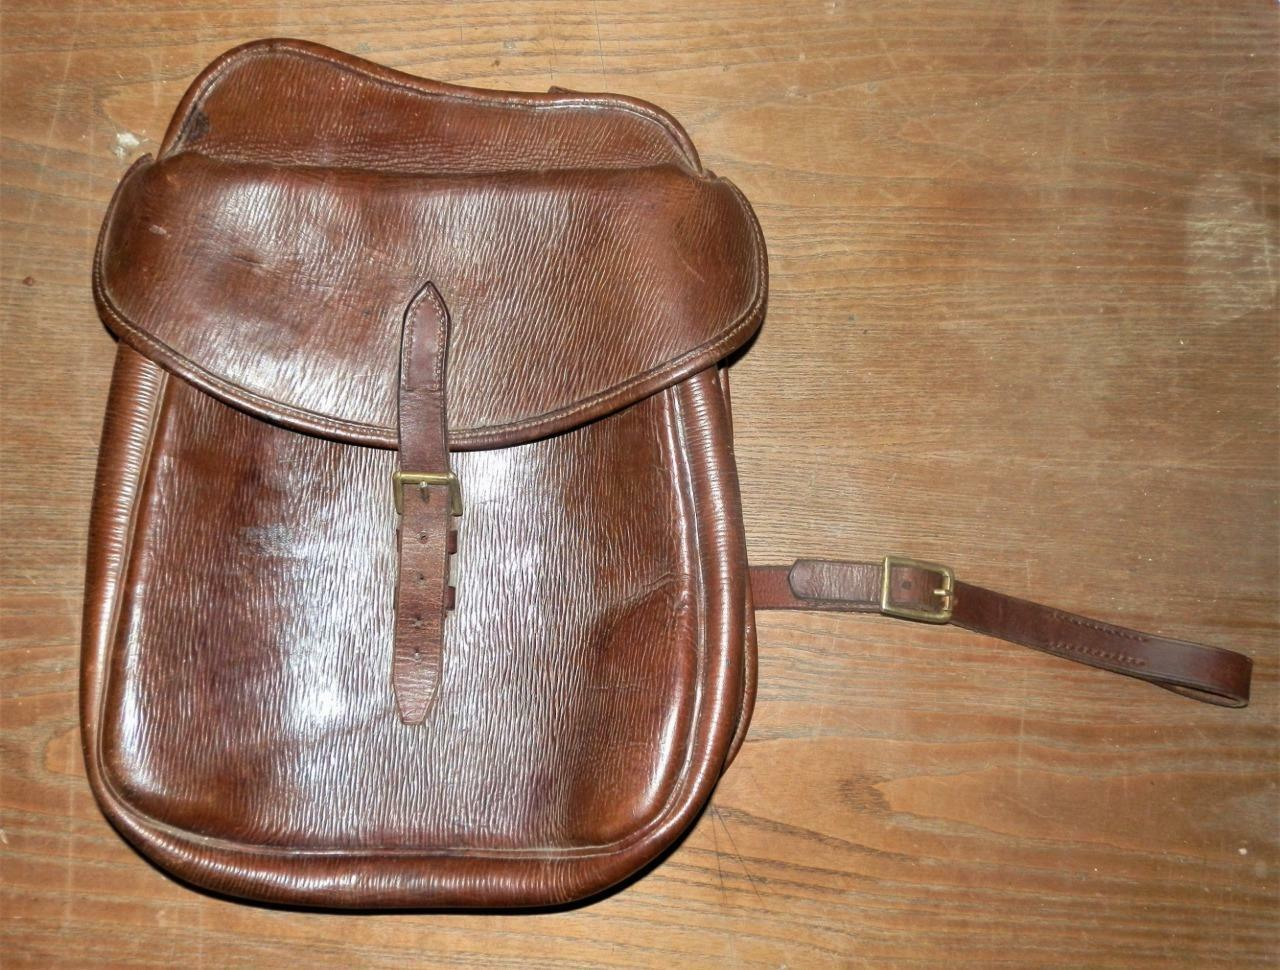 Antique/Vintage English Braun Braun English Leder Large Saddle Bag